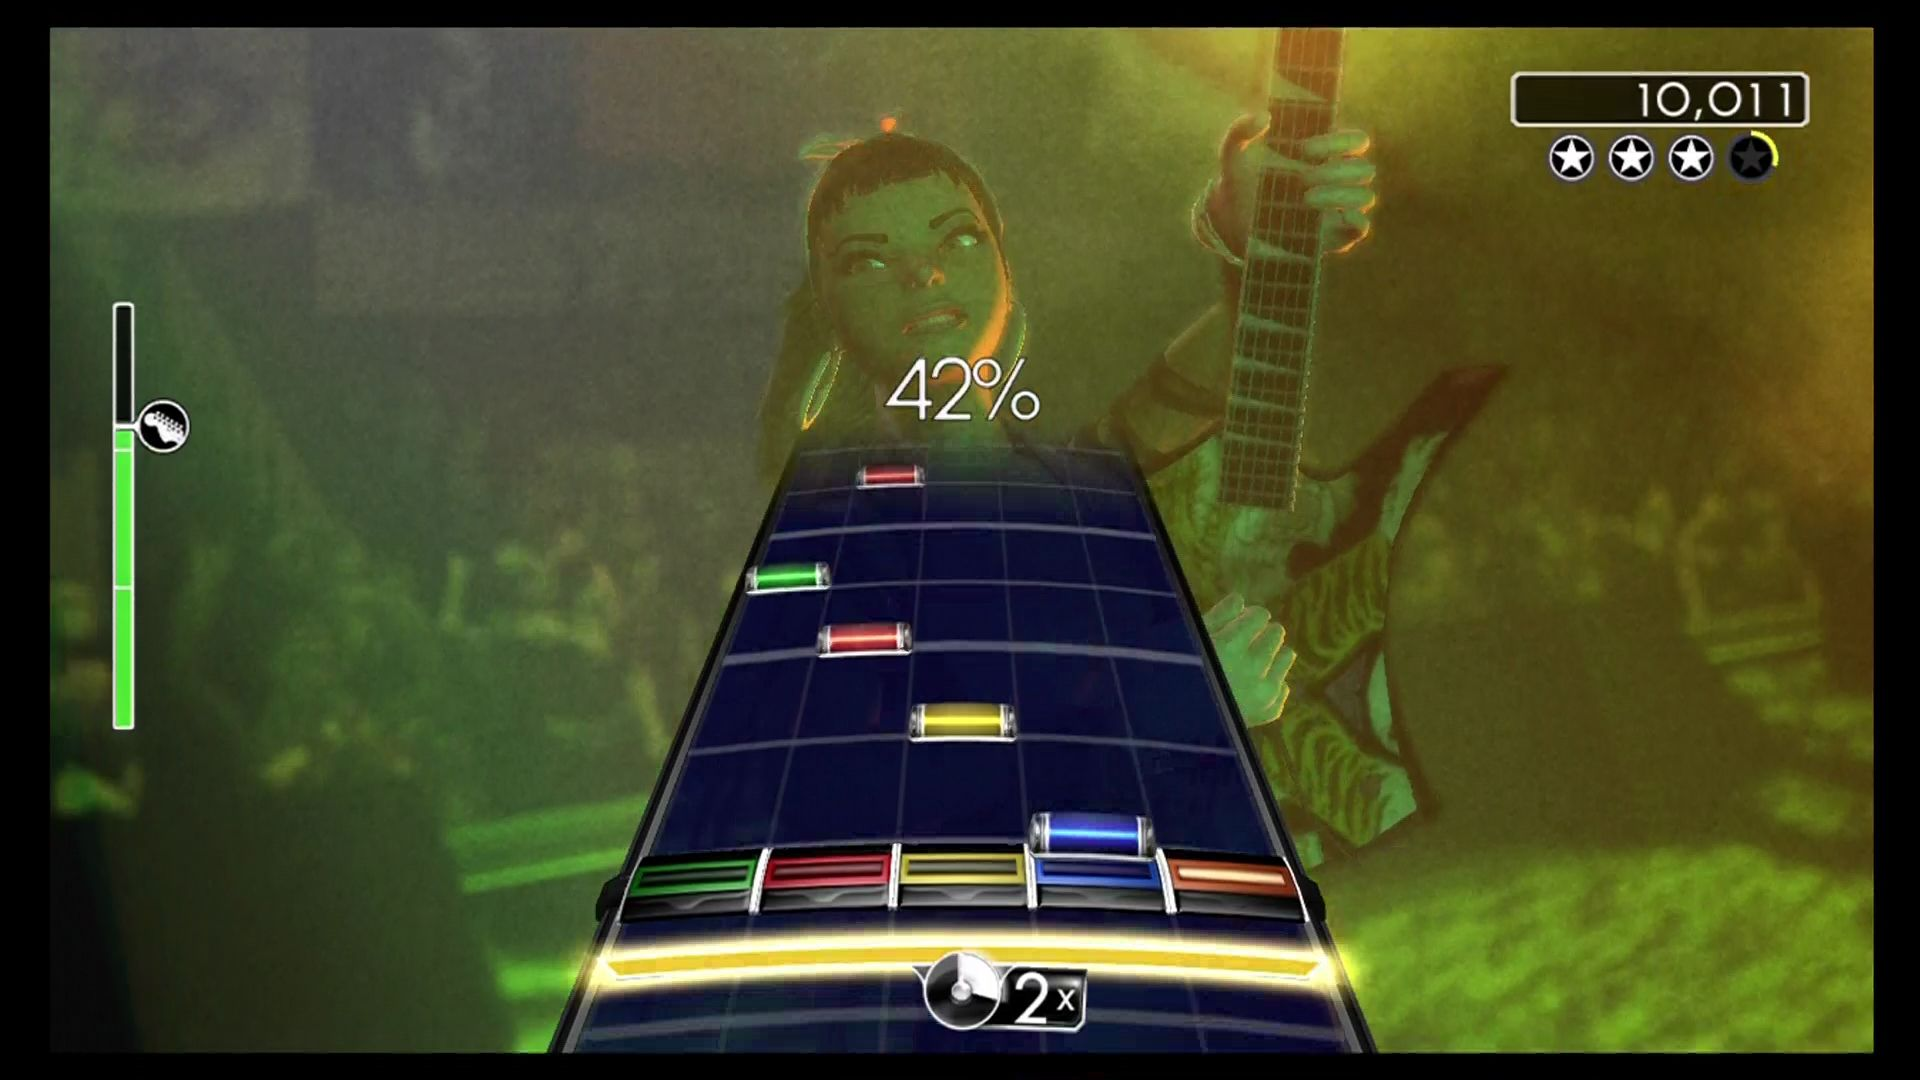 Rock Band Screenshots for Xbox 360 - MobyGames